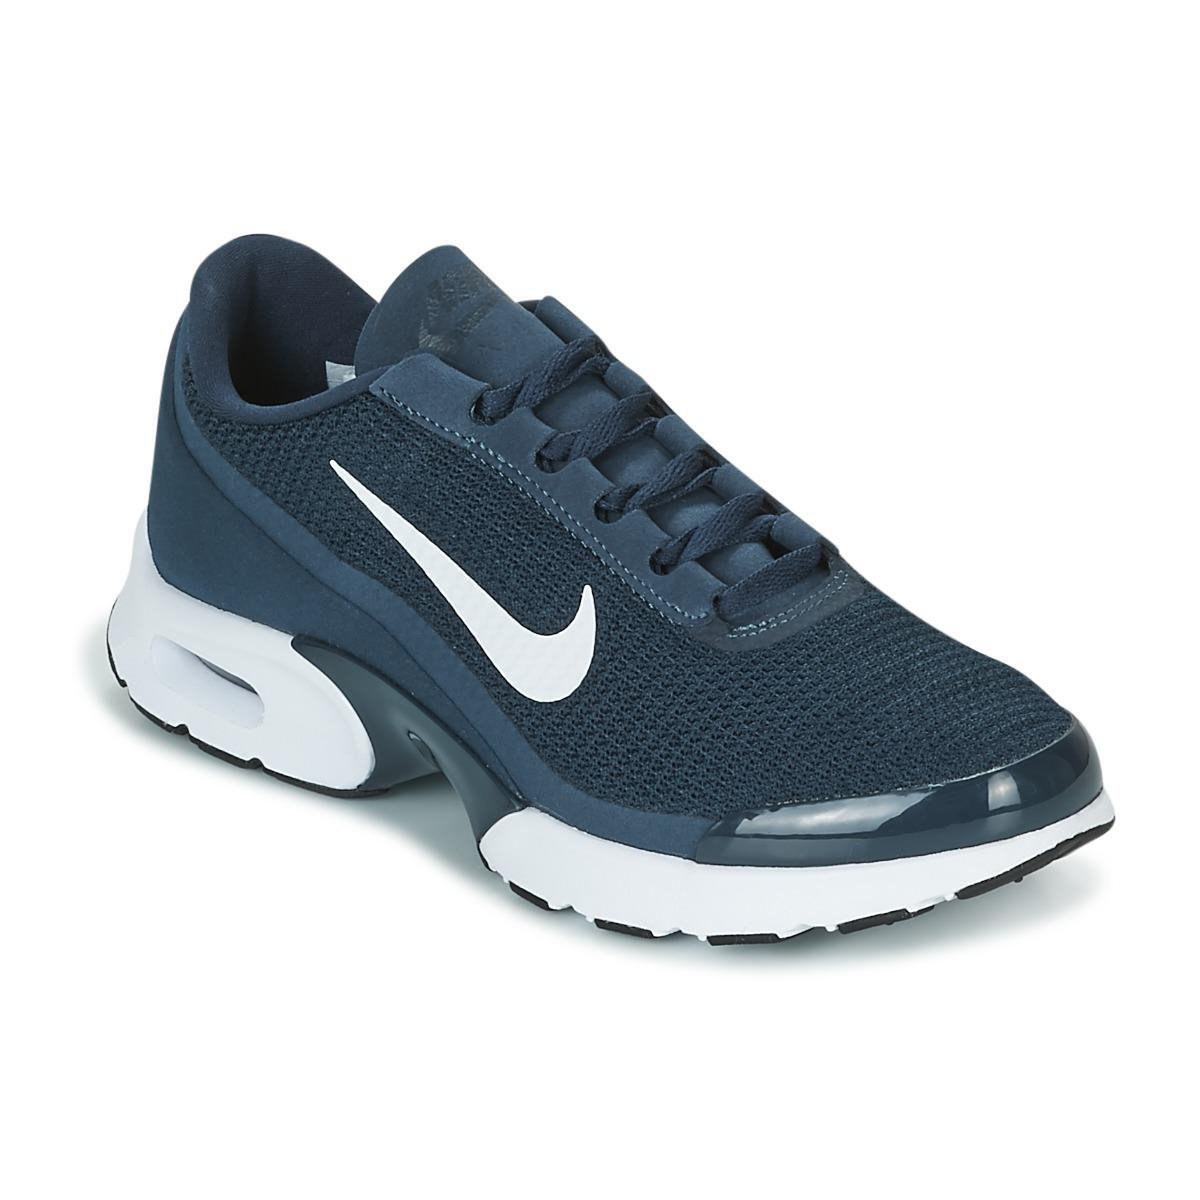 Nike Air Max Jewell W Women s Shoes (trainers) In Blue in Blue - Lyst a876cd41f